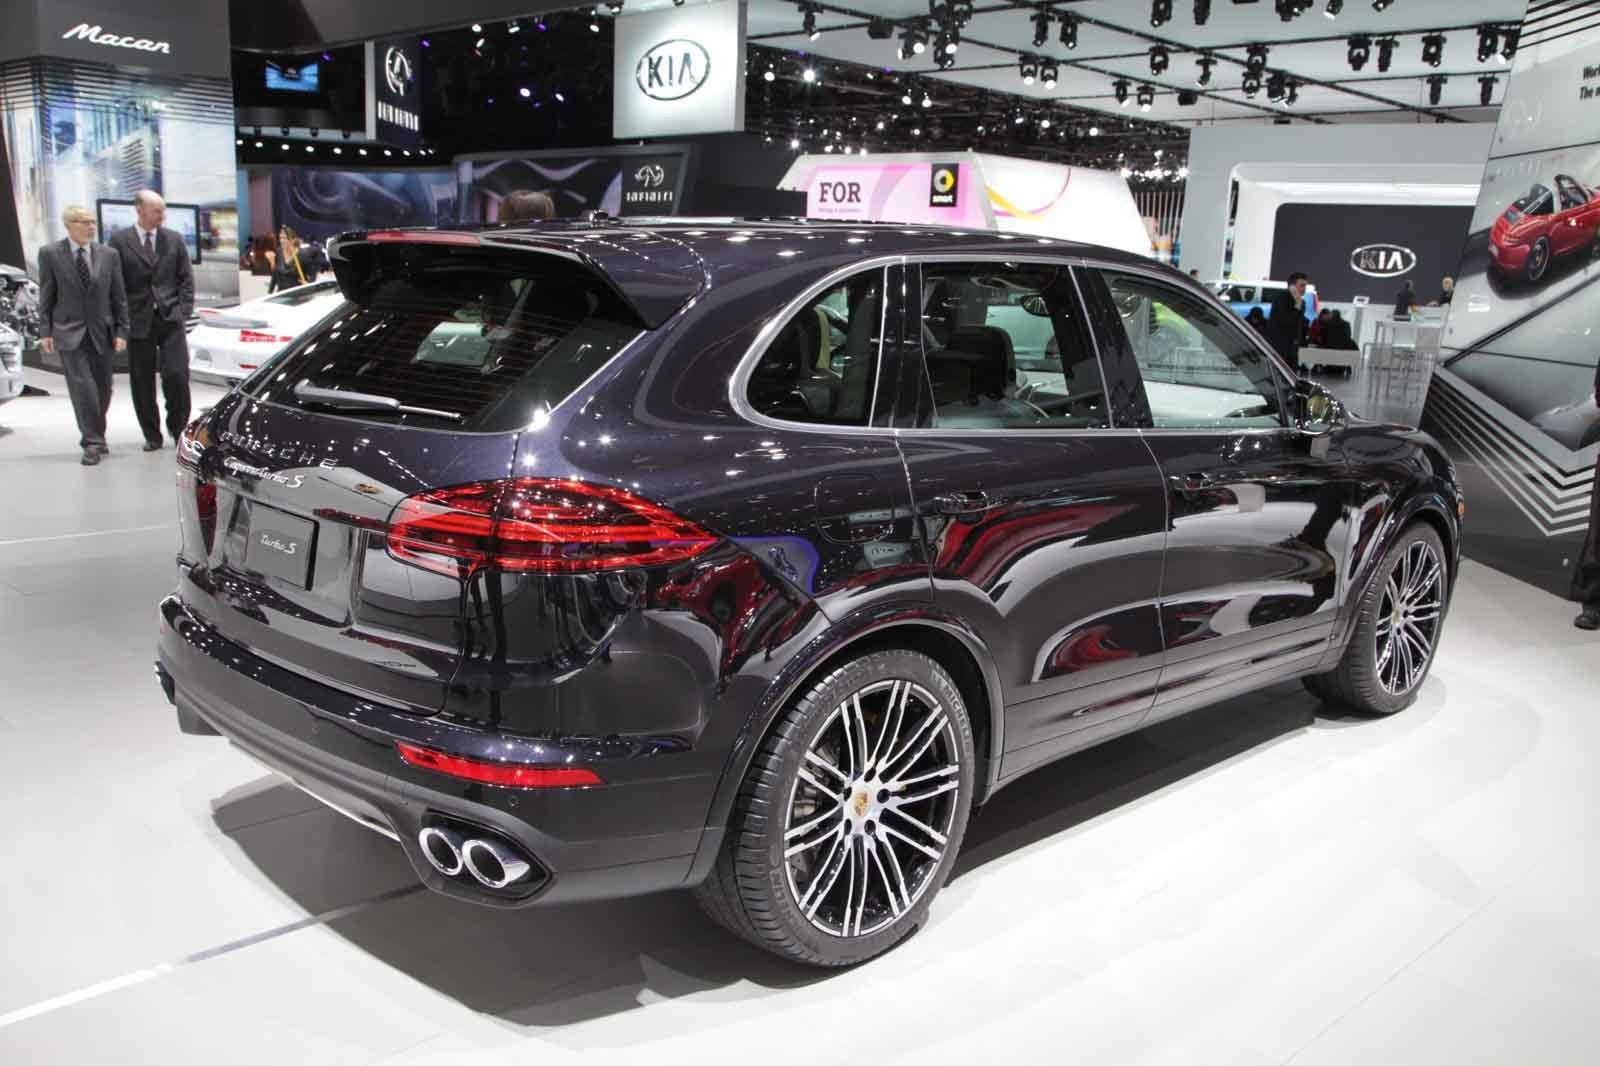 2016 porsche cayenne turbo s picture 611166 car review top speed. Black Bedroom Furniture Sets. Home Design Ideas